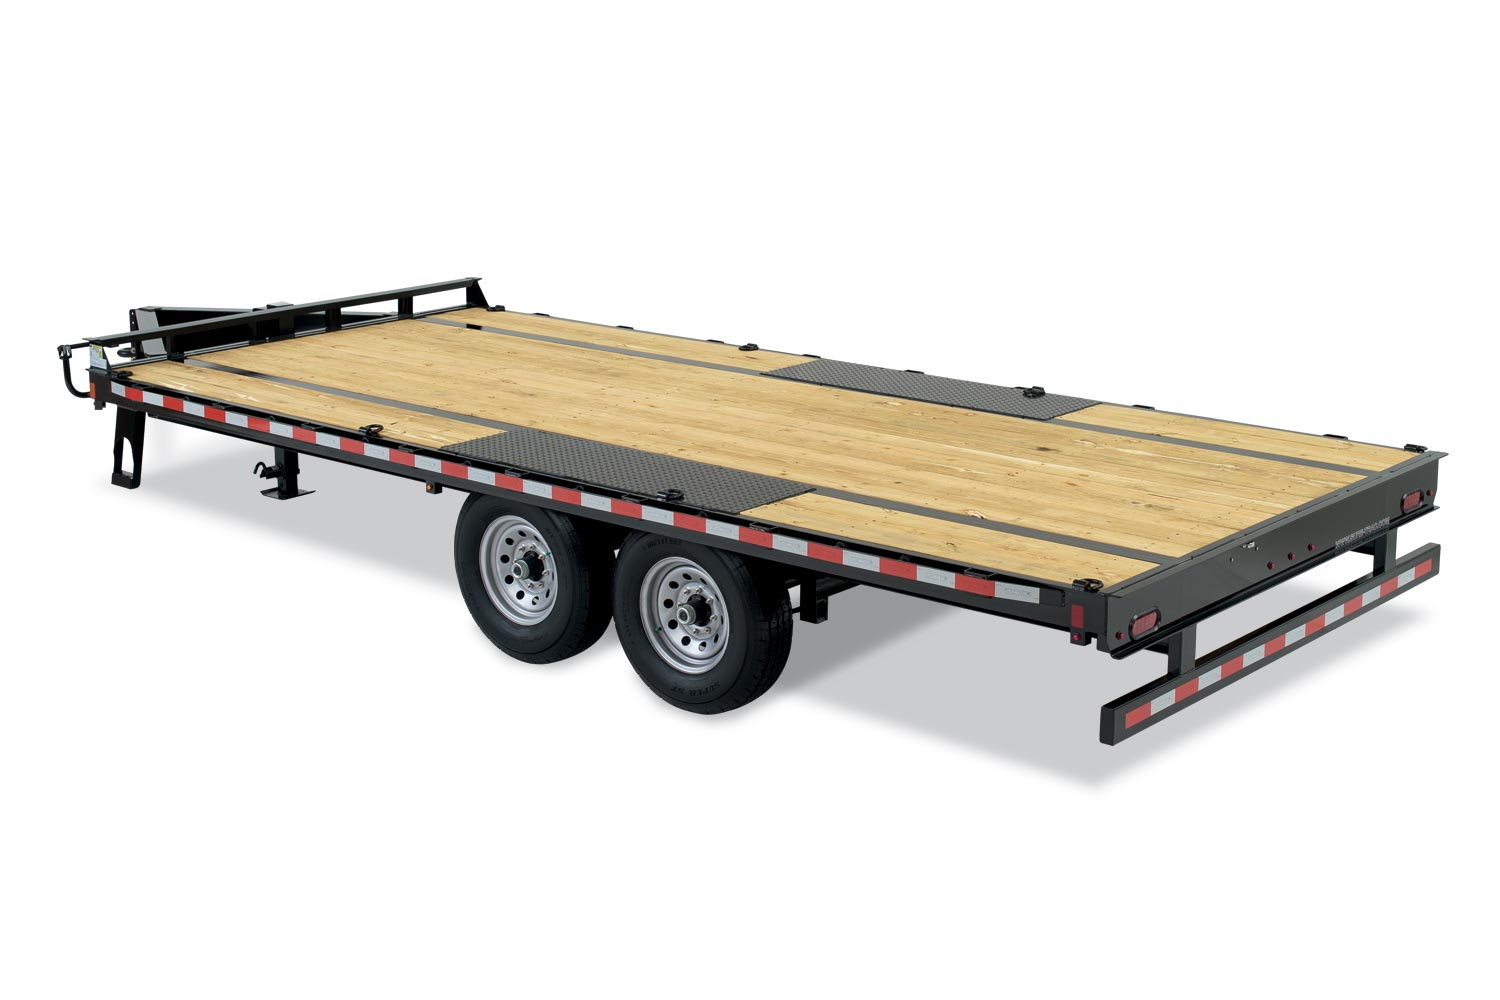 Sure-Trac 8.5 x 20 + 5 32K Heavy Duty Low Profile Beavertail Deckover